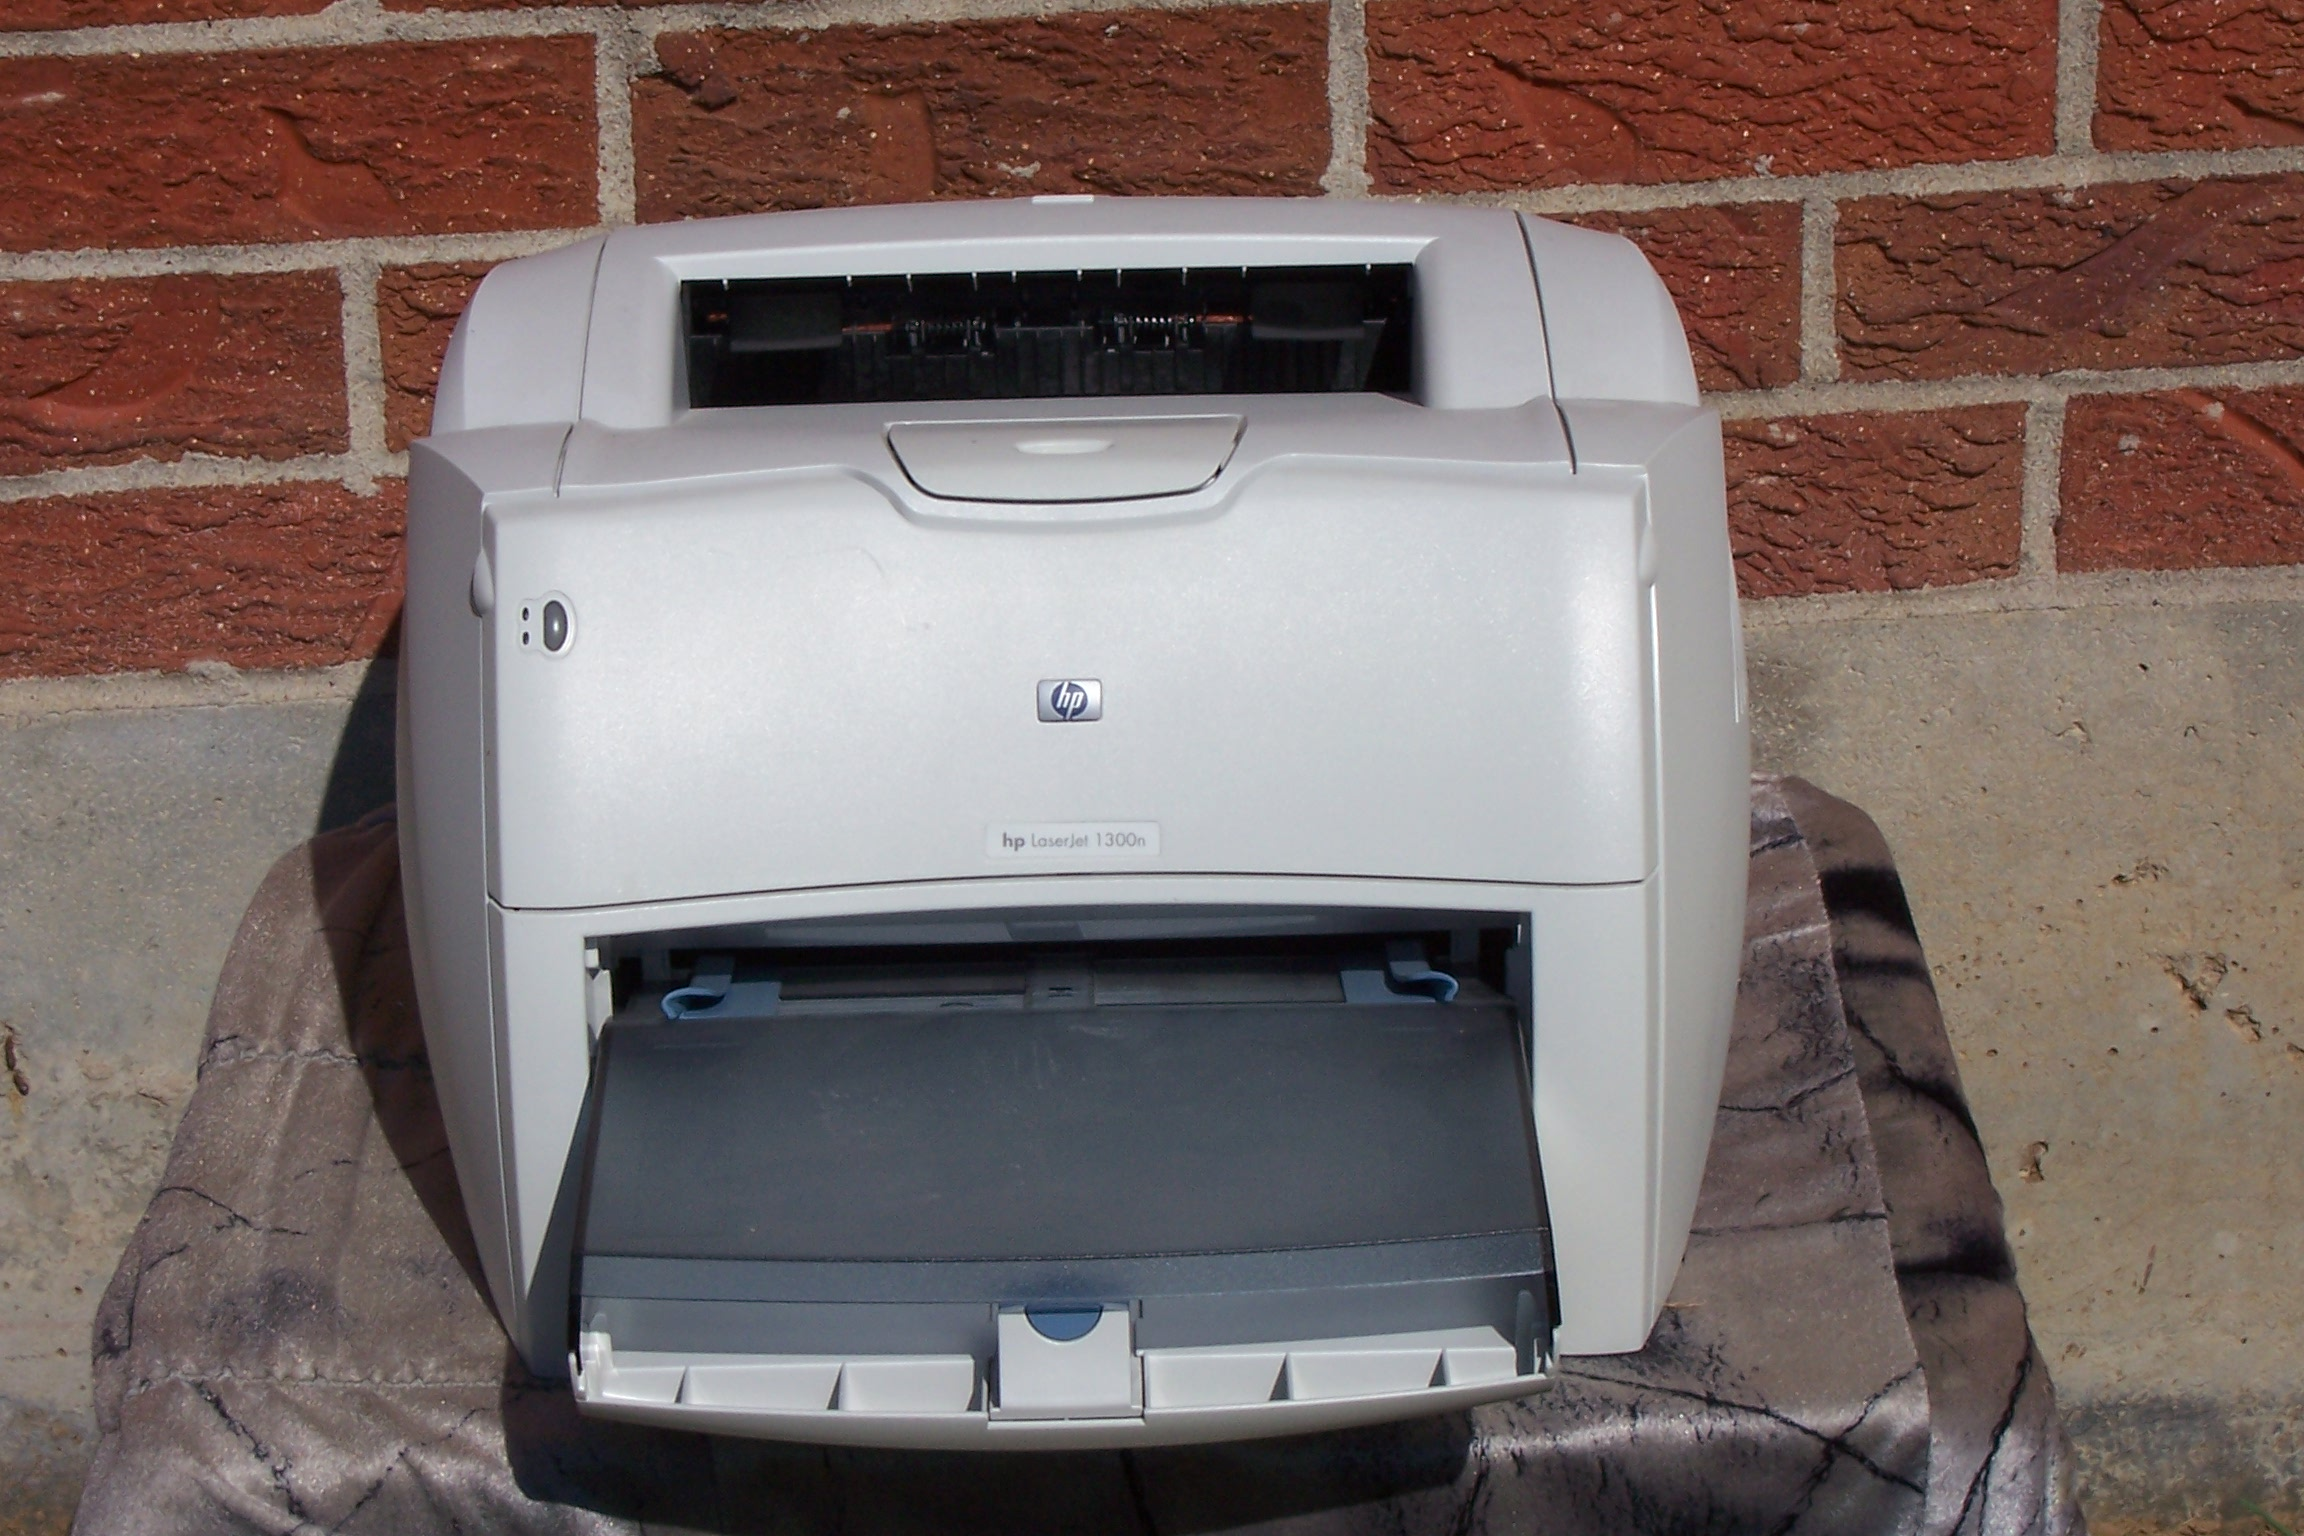 HP LASER PRINTER 1300N DRIVERS FOR WINDOWS